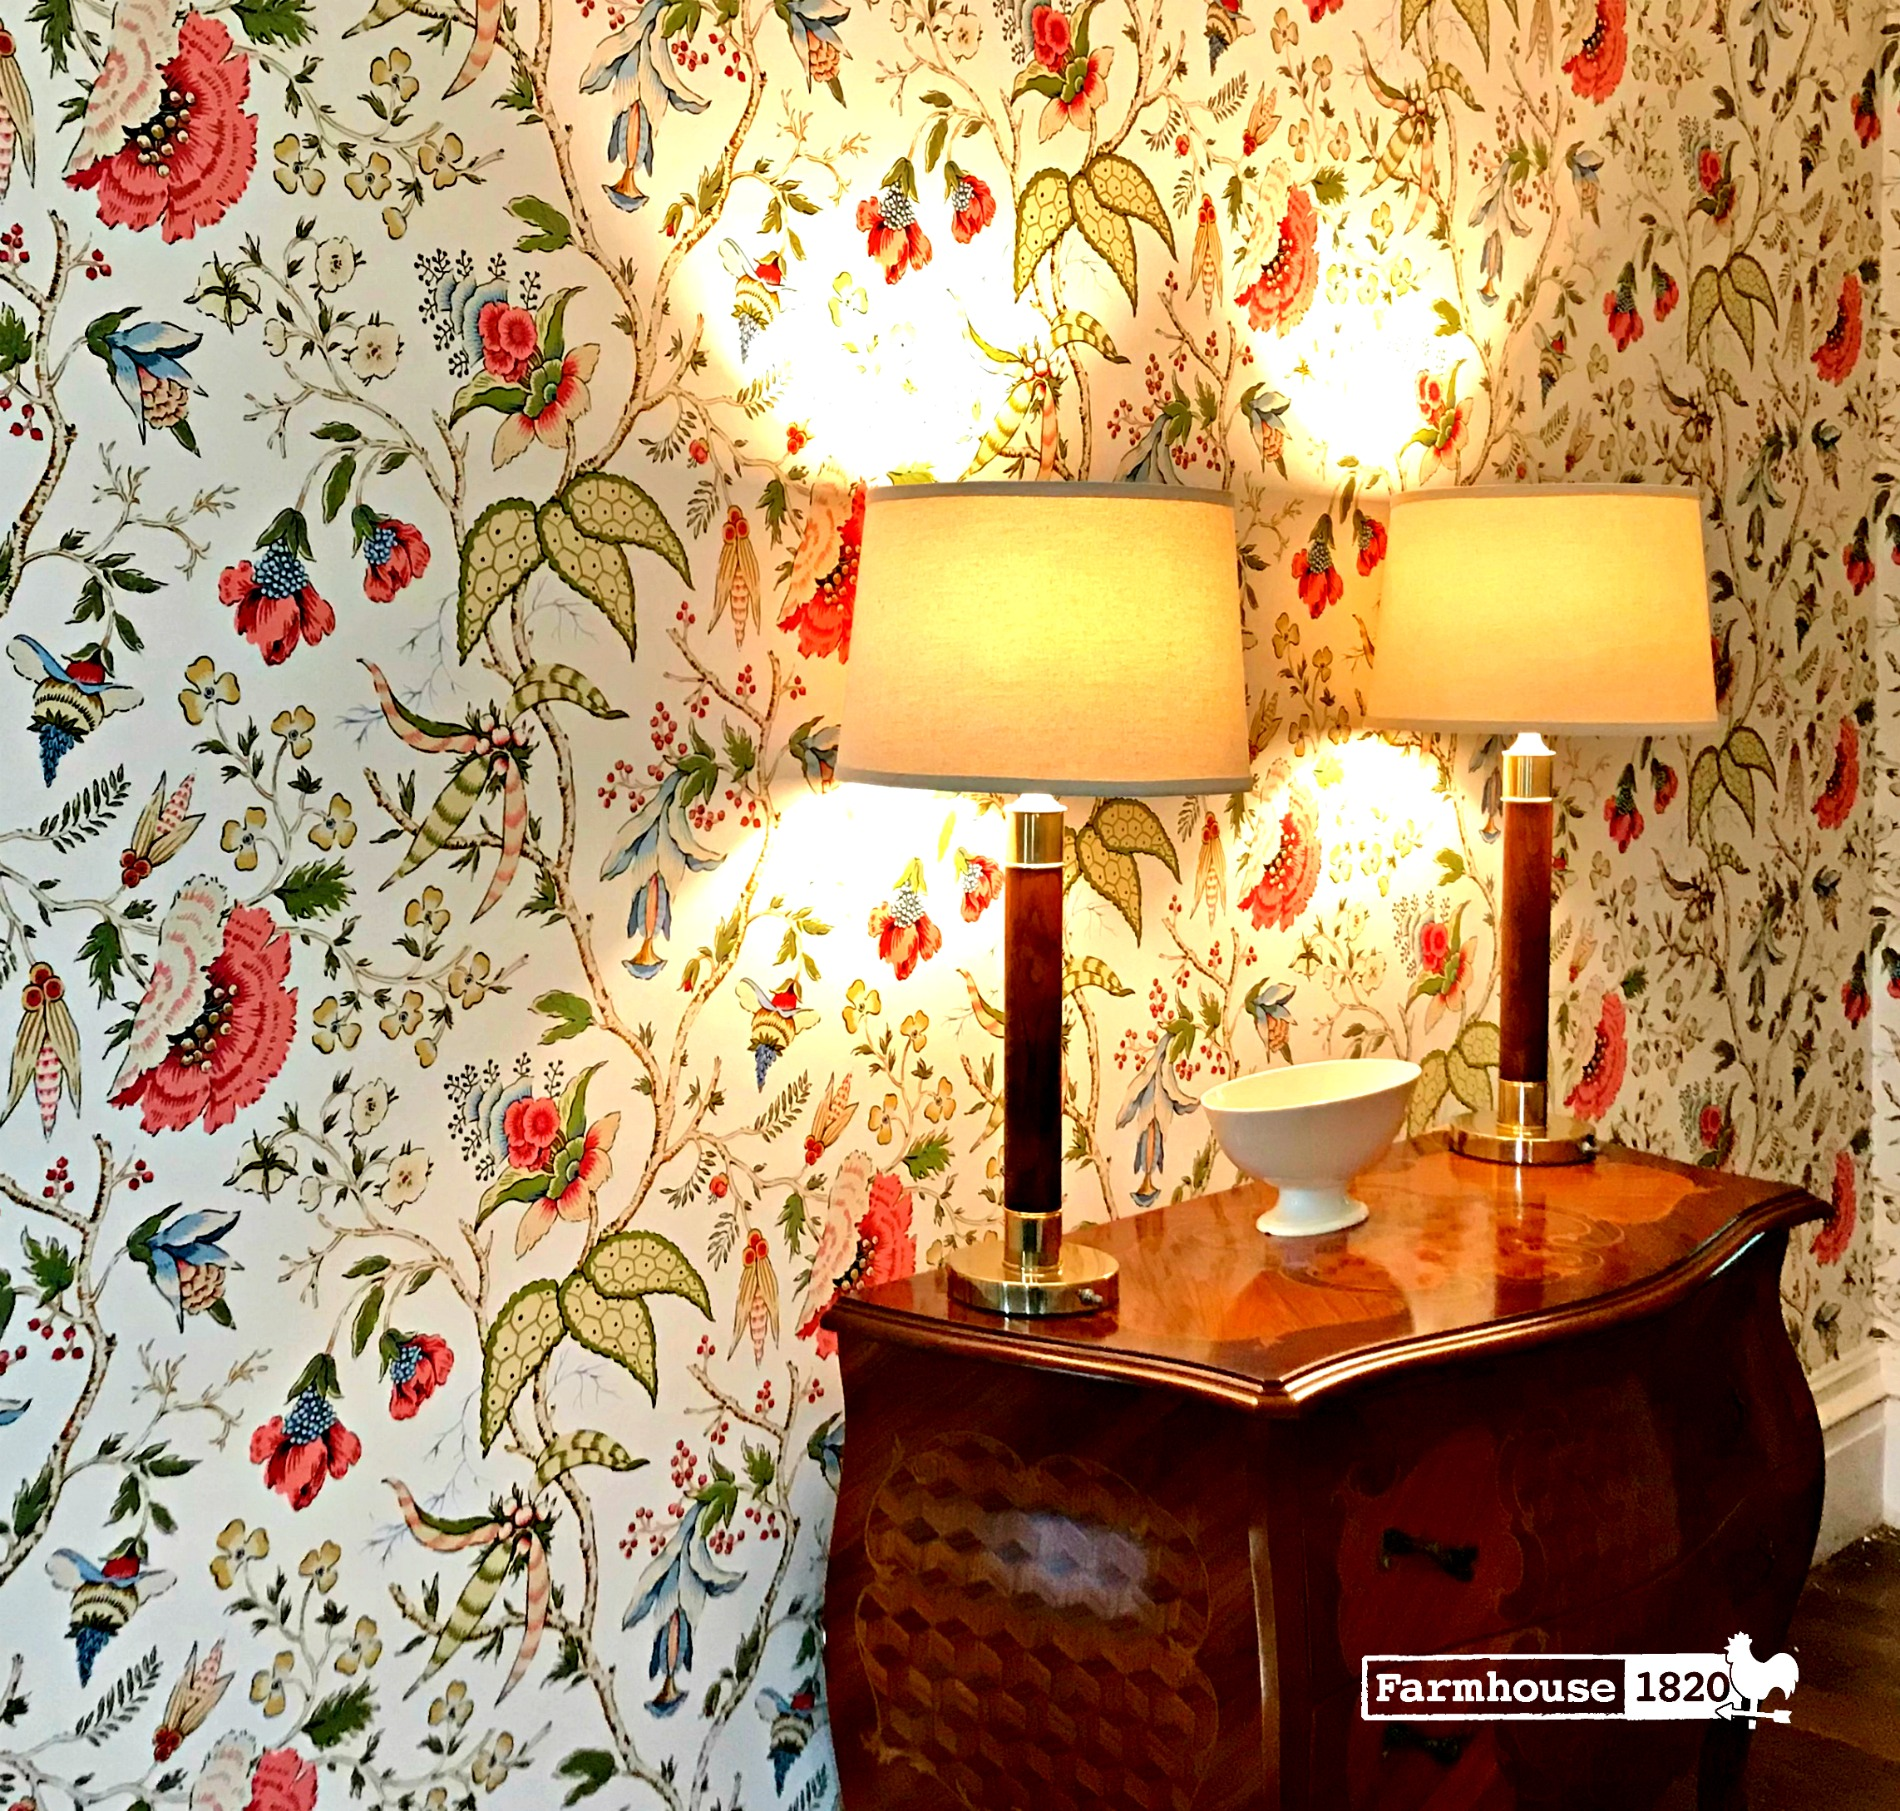 The Foyer - beautiful floral wallpaper feels so welcoming